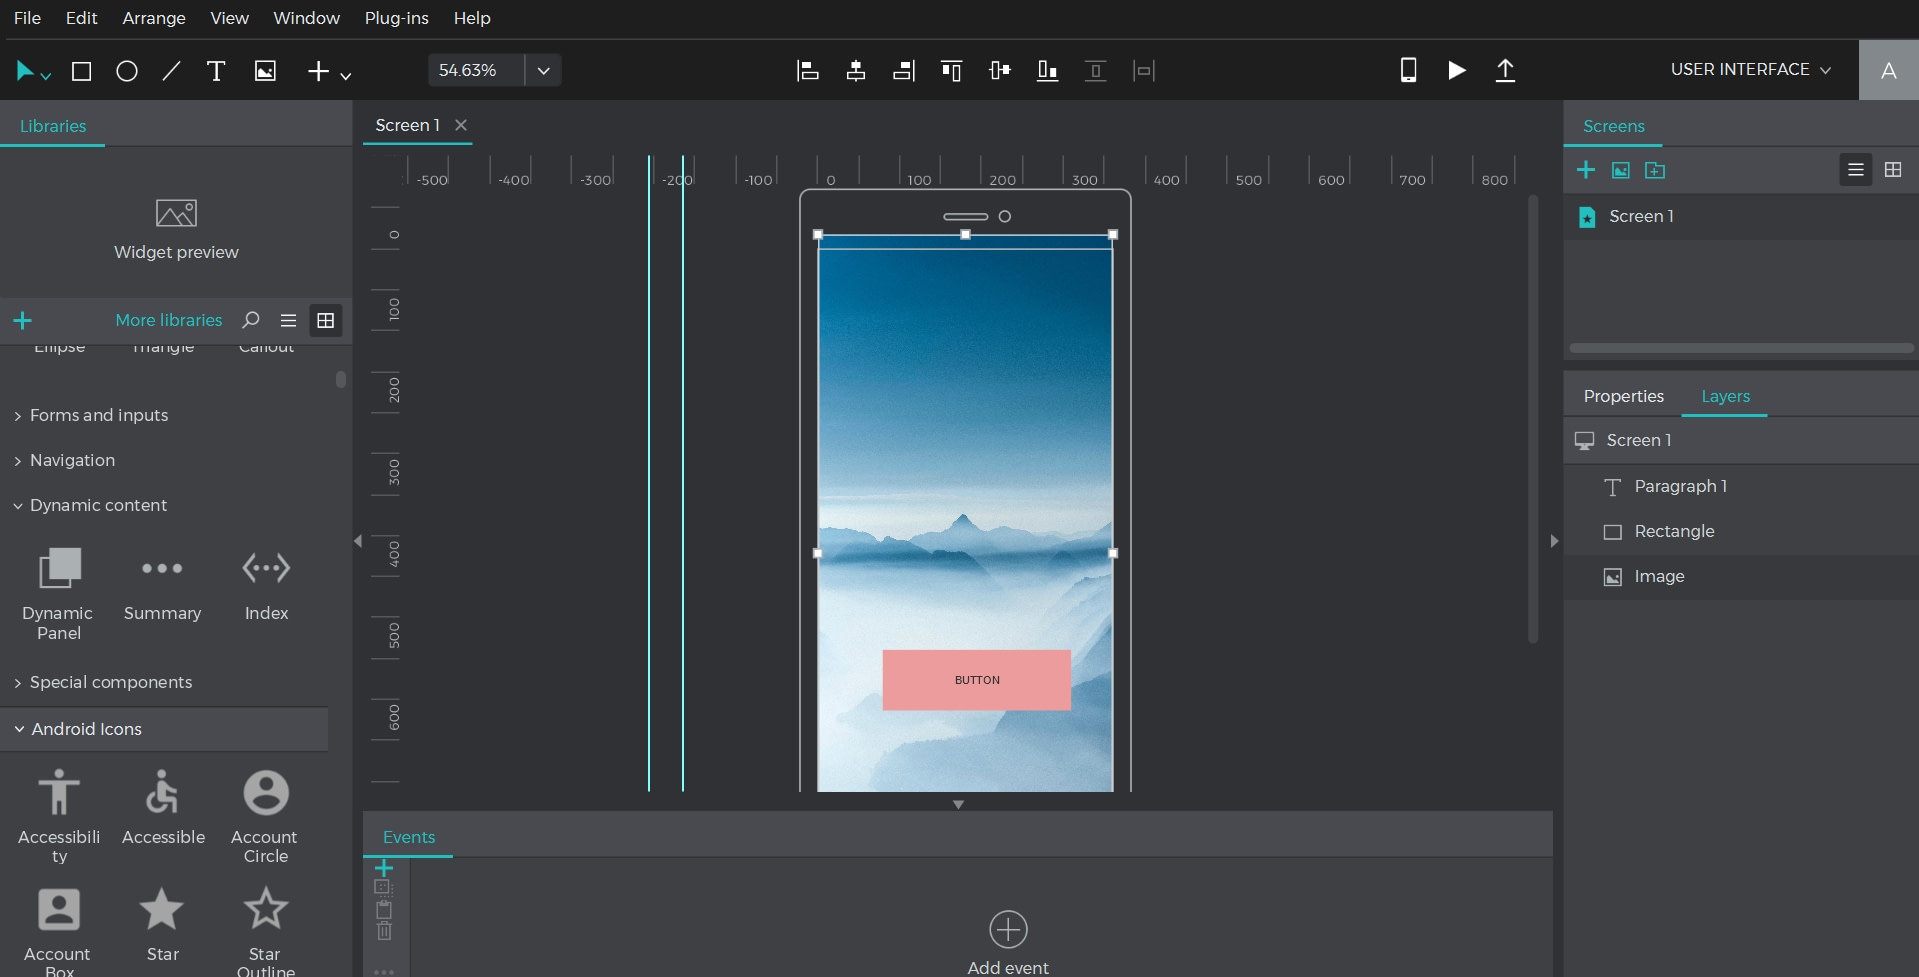 what are splash screens and how to create them with Justinmind tool